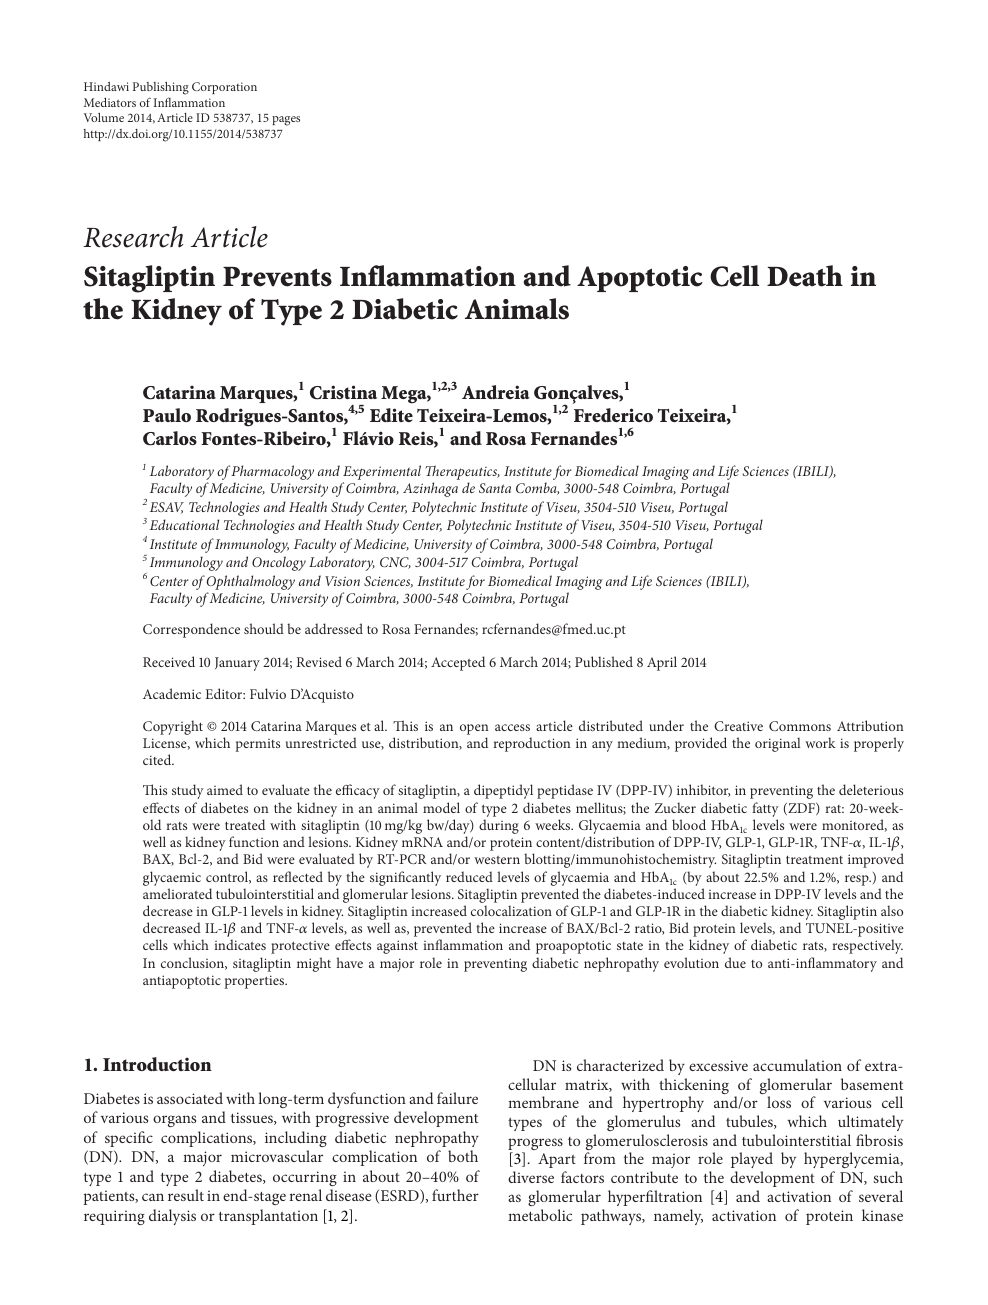 Sitagliptin Prevents Inflammation and Apoptotic Cell Death